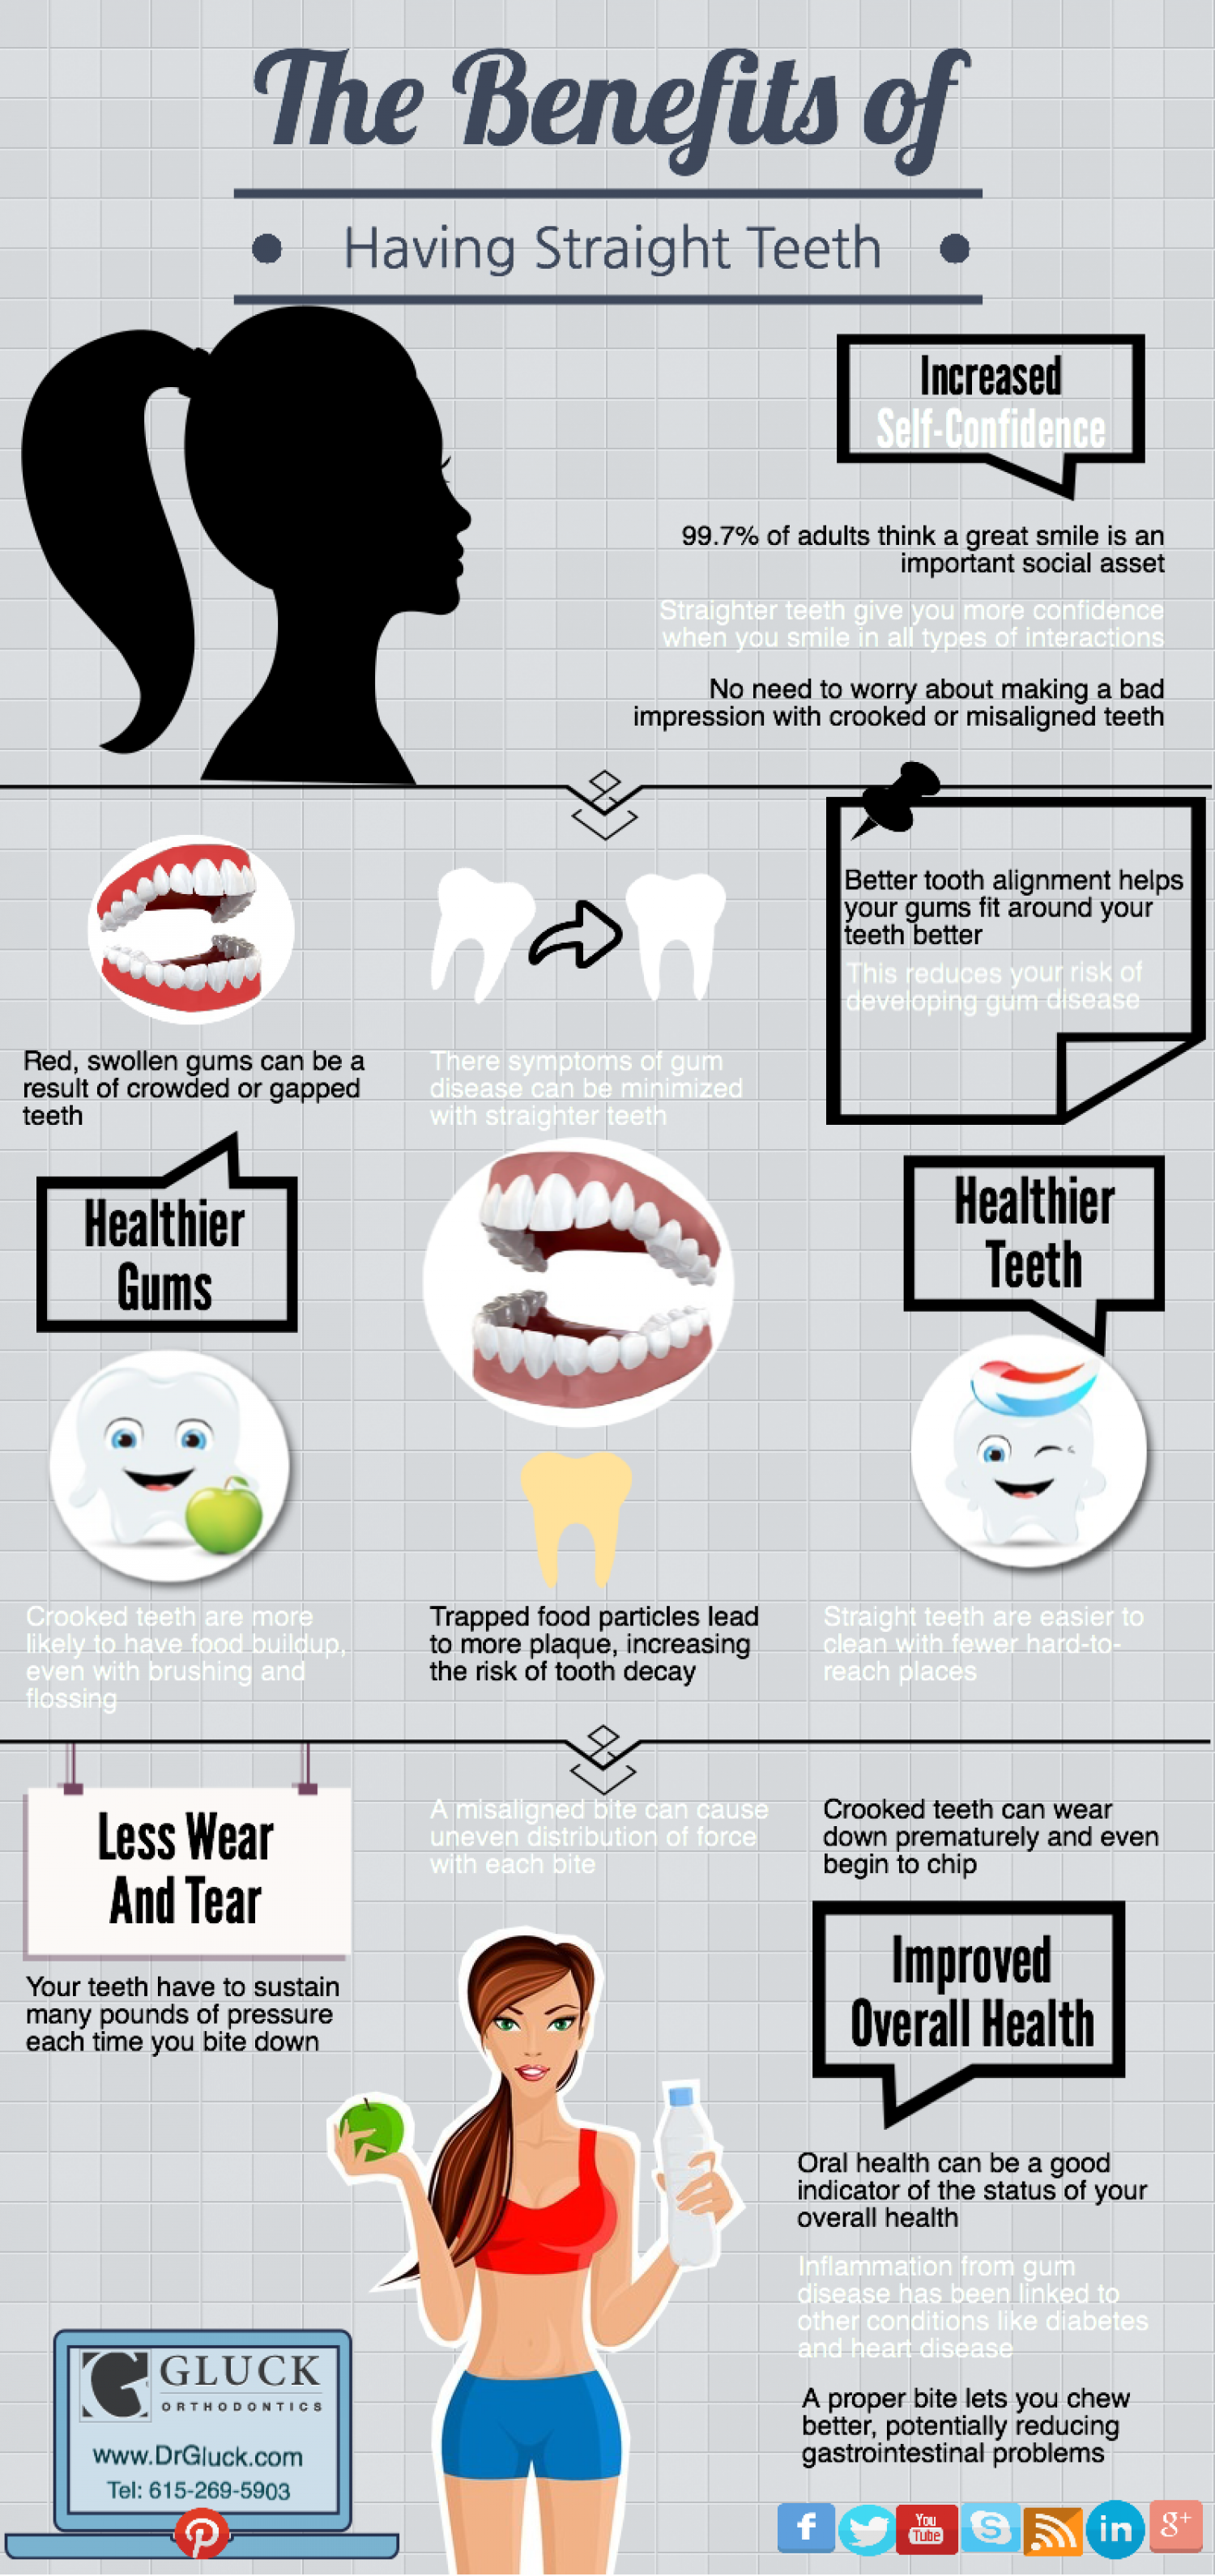 Benefits of Straight Teeth by Gluck Orthodontics Infographic